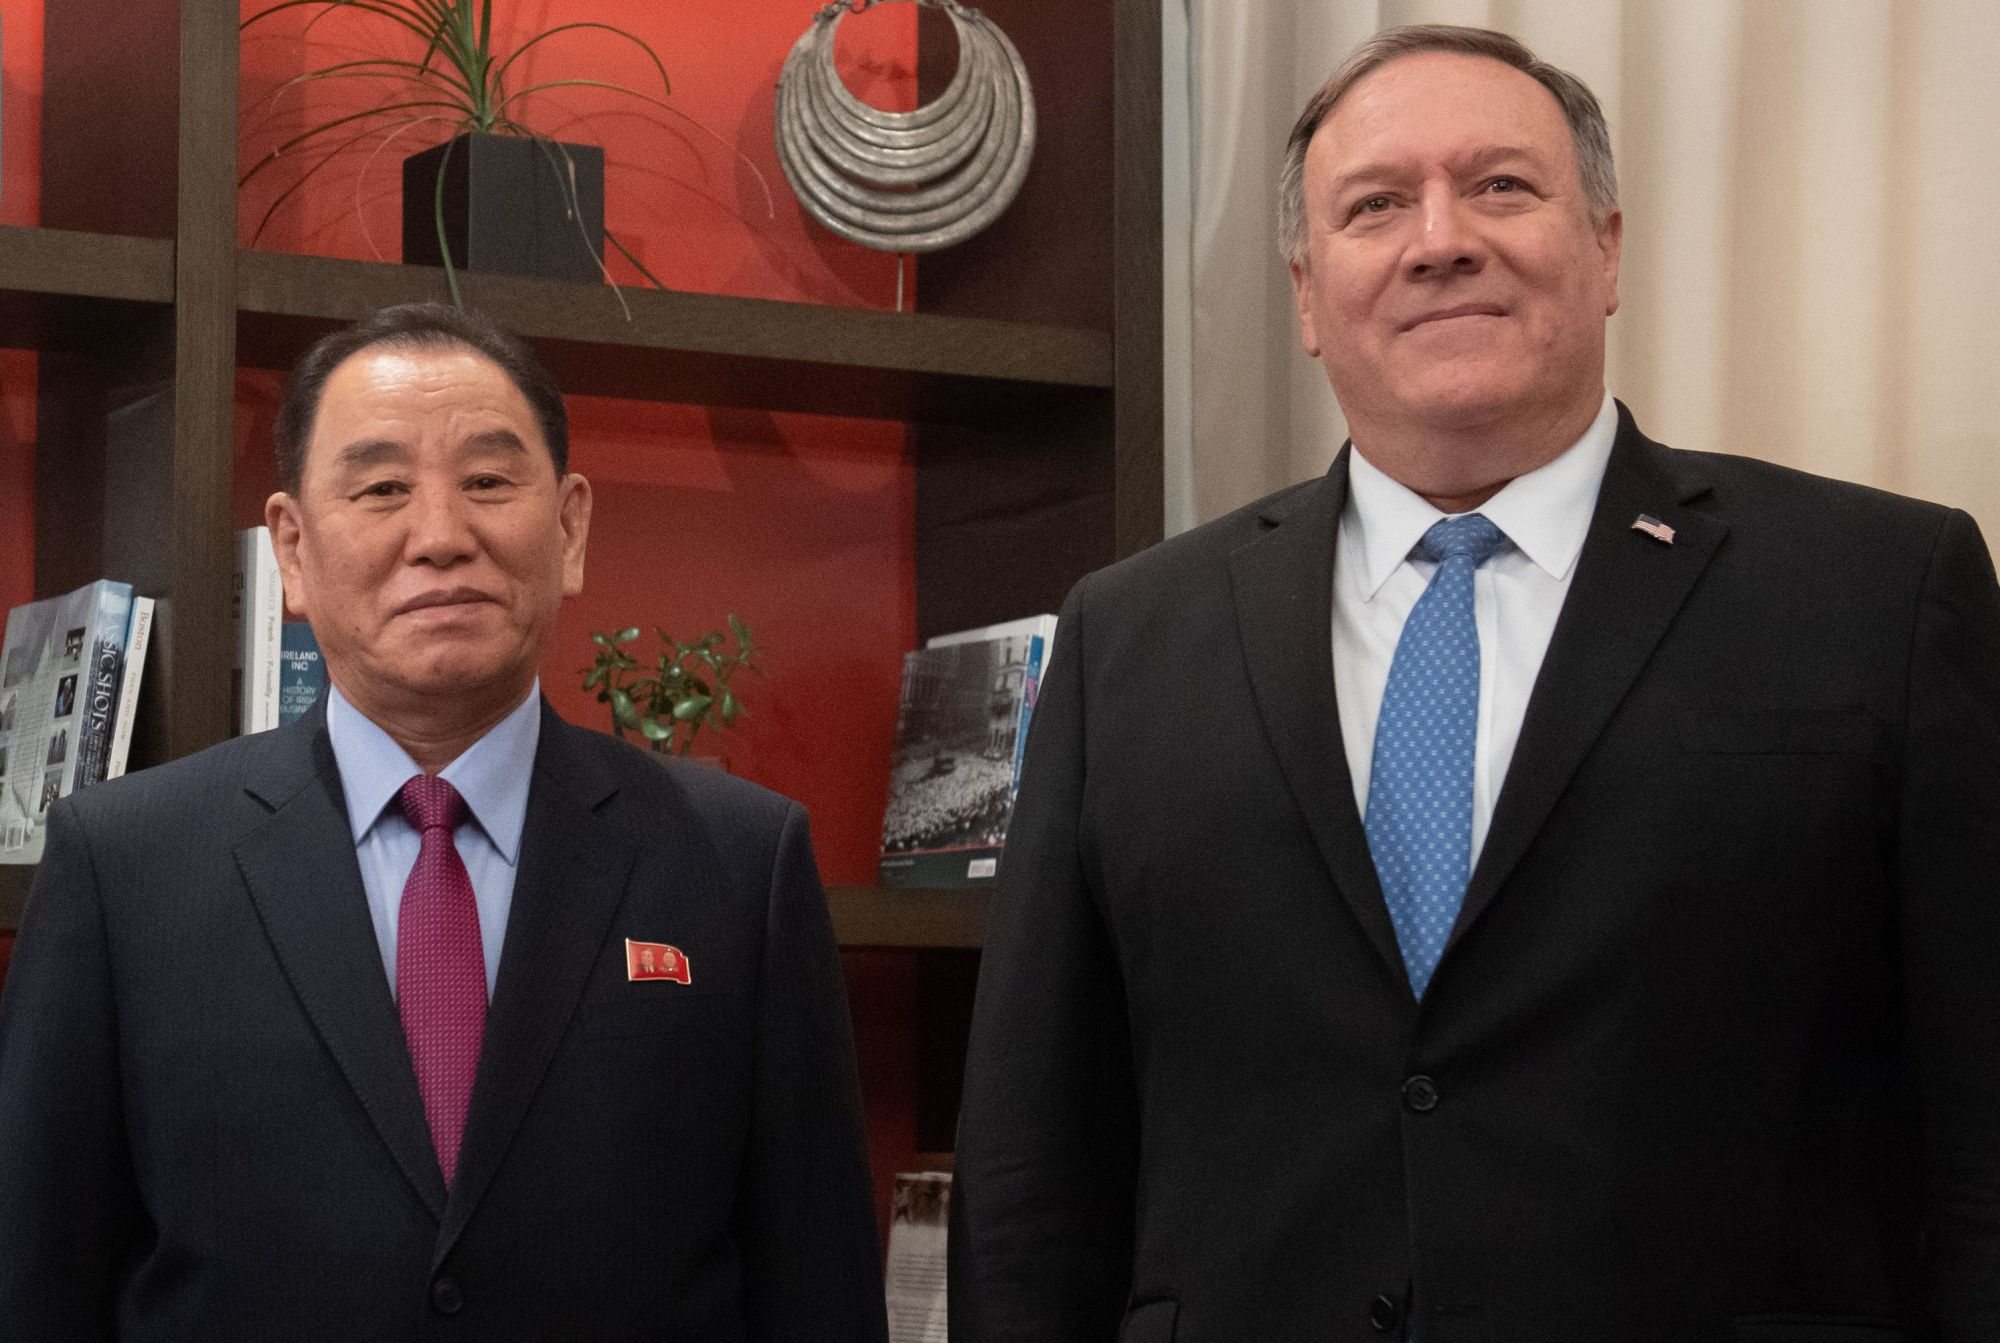 U.S. Secretary of State Mike Pompeo welcomes North Korean Vice-Chairman Kim Yong Chol prior to a meeting in Washington Jan. 18. Pompeo held talks on North Korea with his Japanese and South Korean counterparts ahead of a summit between Pyongyang's leader and the U.S. president, the State Department said Monday. The phone calls, which took place on Sunday, come after President Donald Trump announced that a location for his summit with Kim Jong Un has been decided. | AFP-JIJI